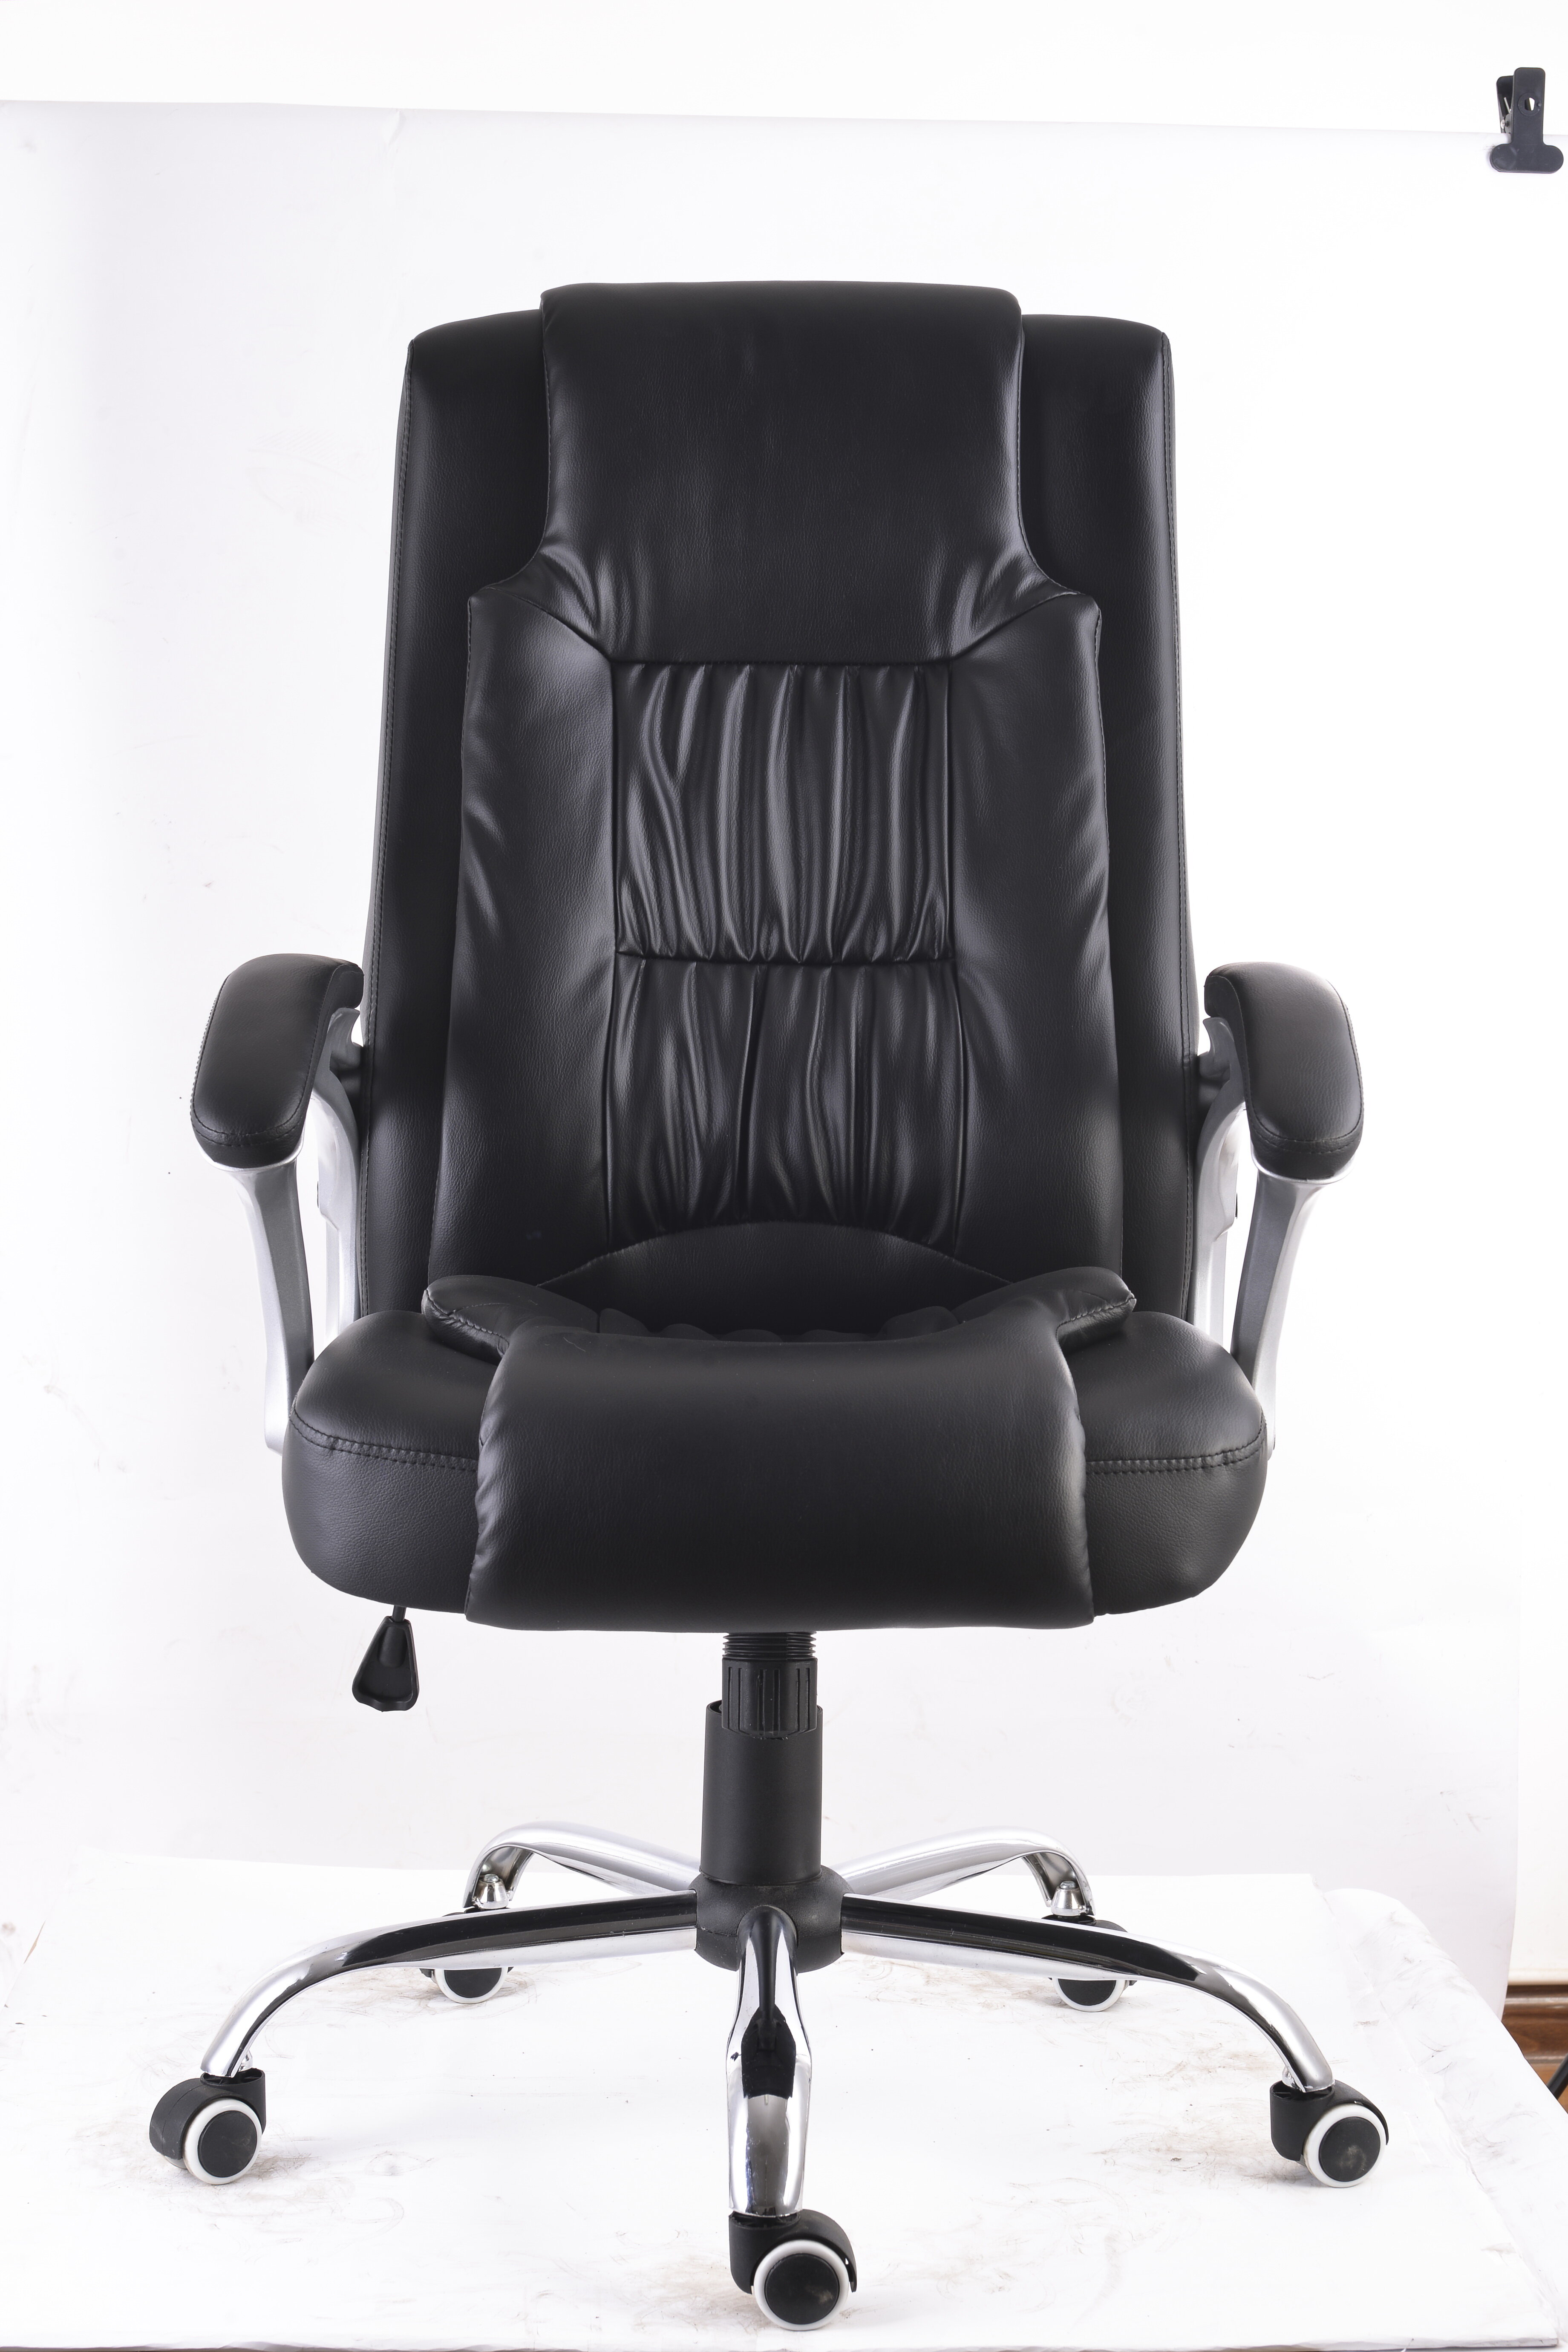 blackwhite racing right office gaming p black edition chair white products vertagear line series rev ergonomic style